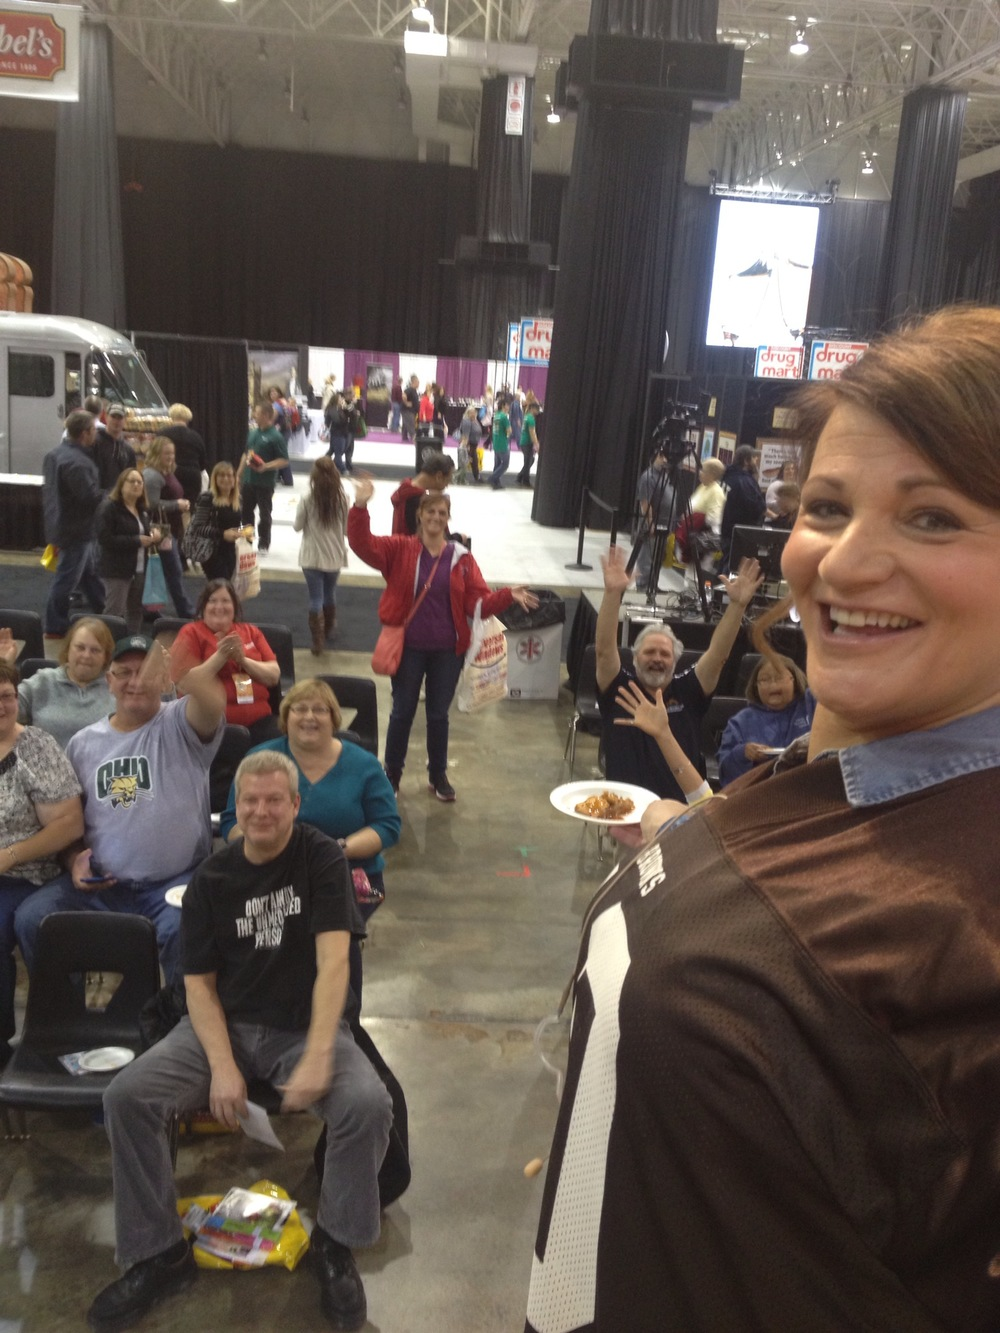 Fun at the fabulous food show Cleveland 2014